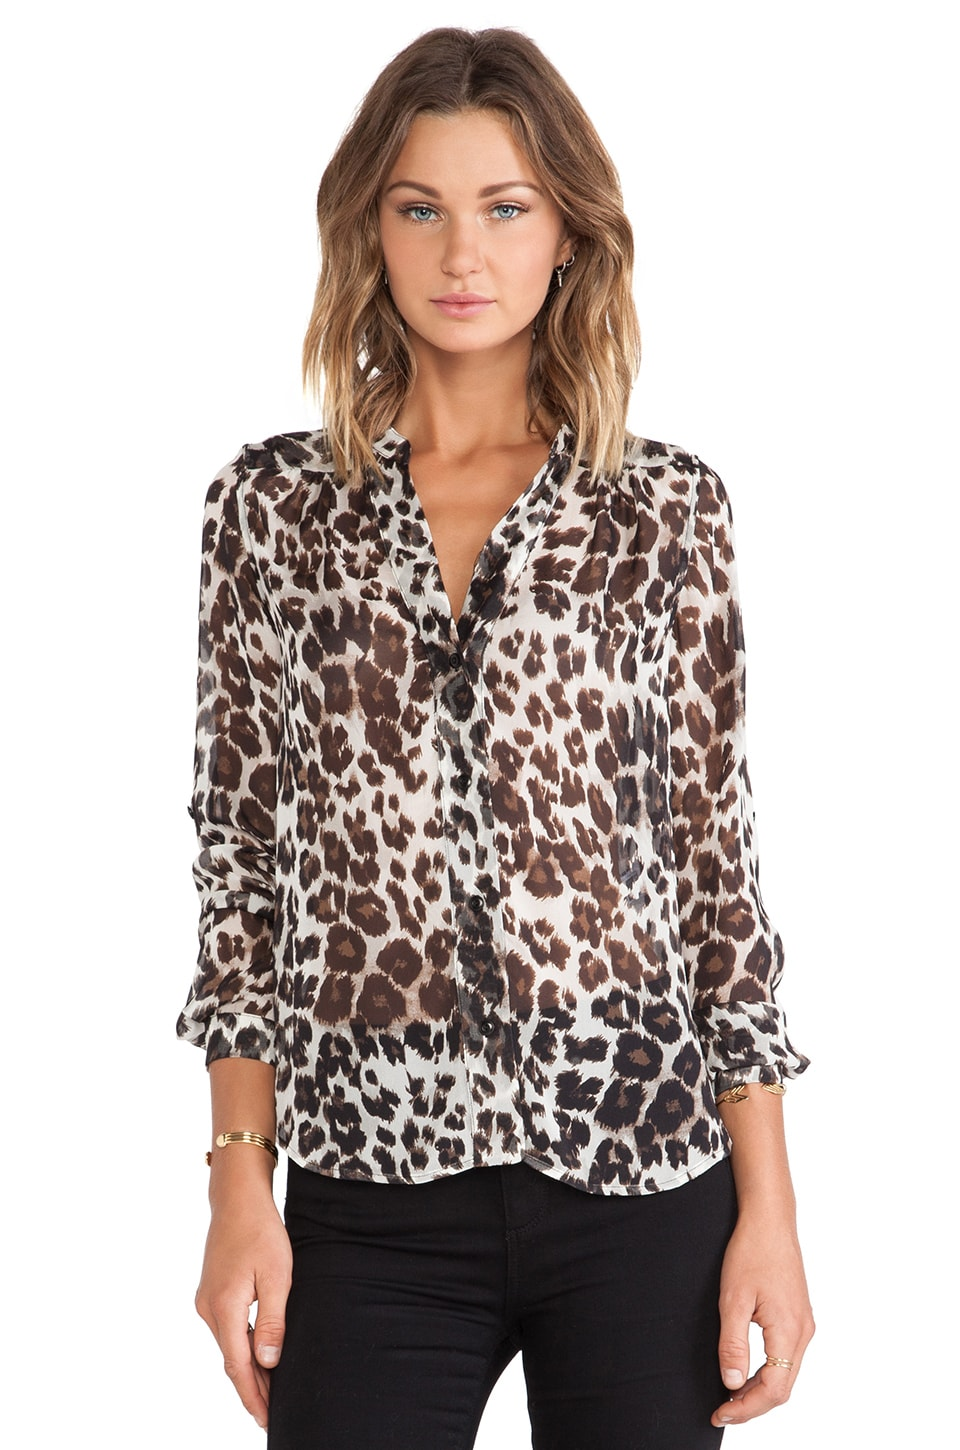 Diane von Furstenberg Harlow Blouse in Snow Cheetah Large